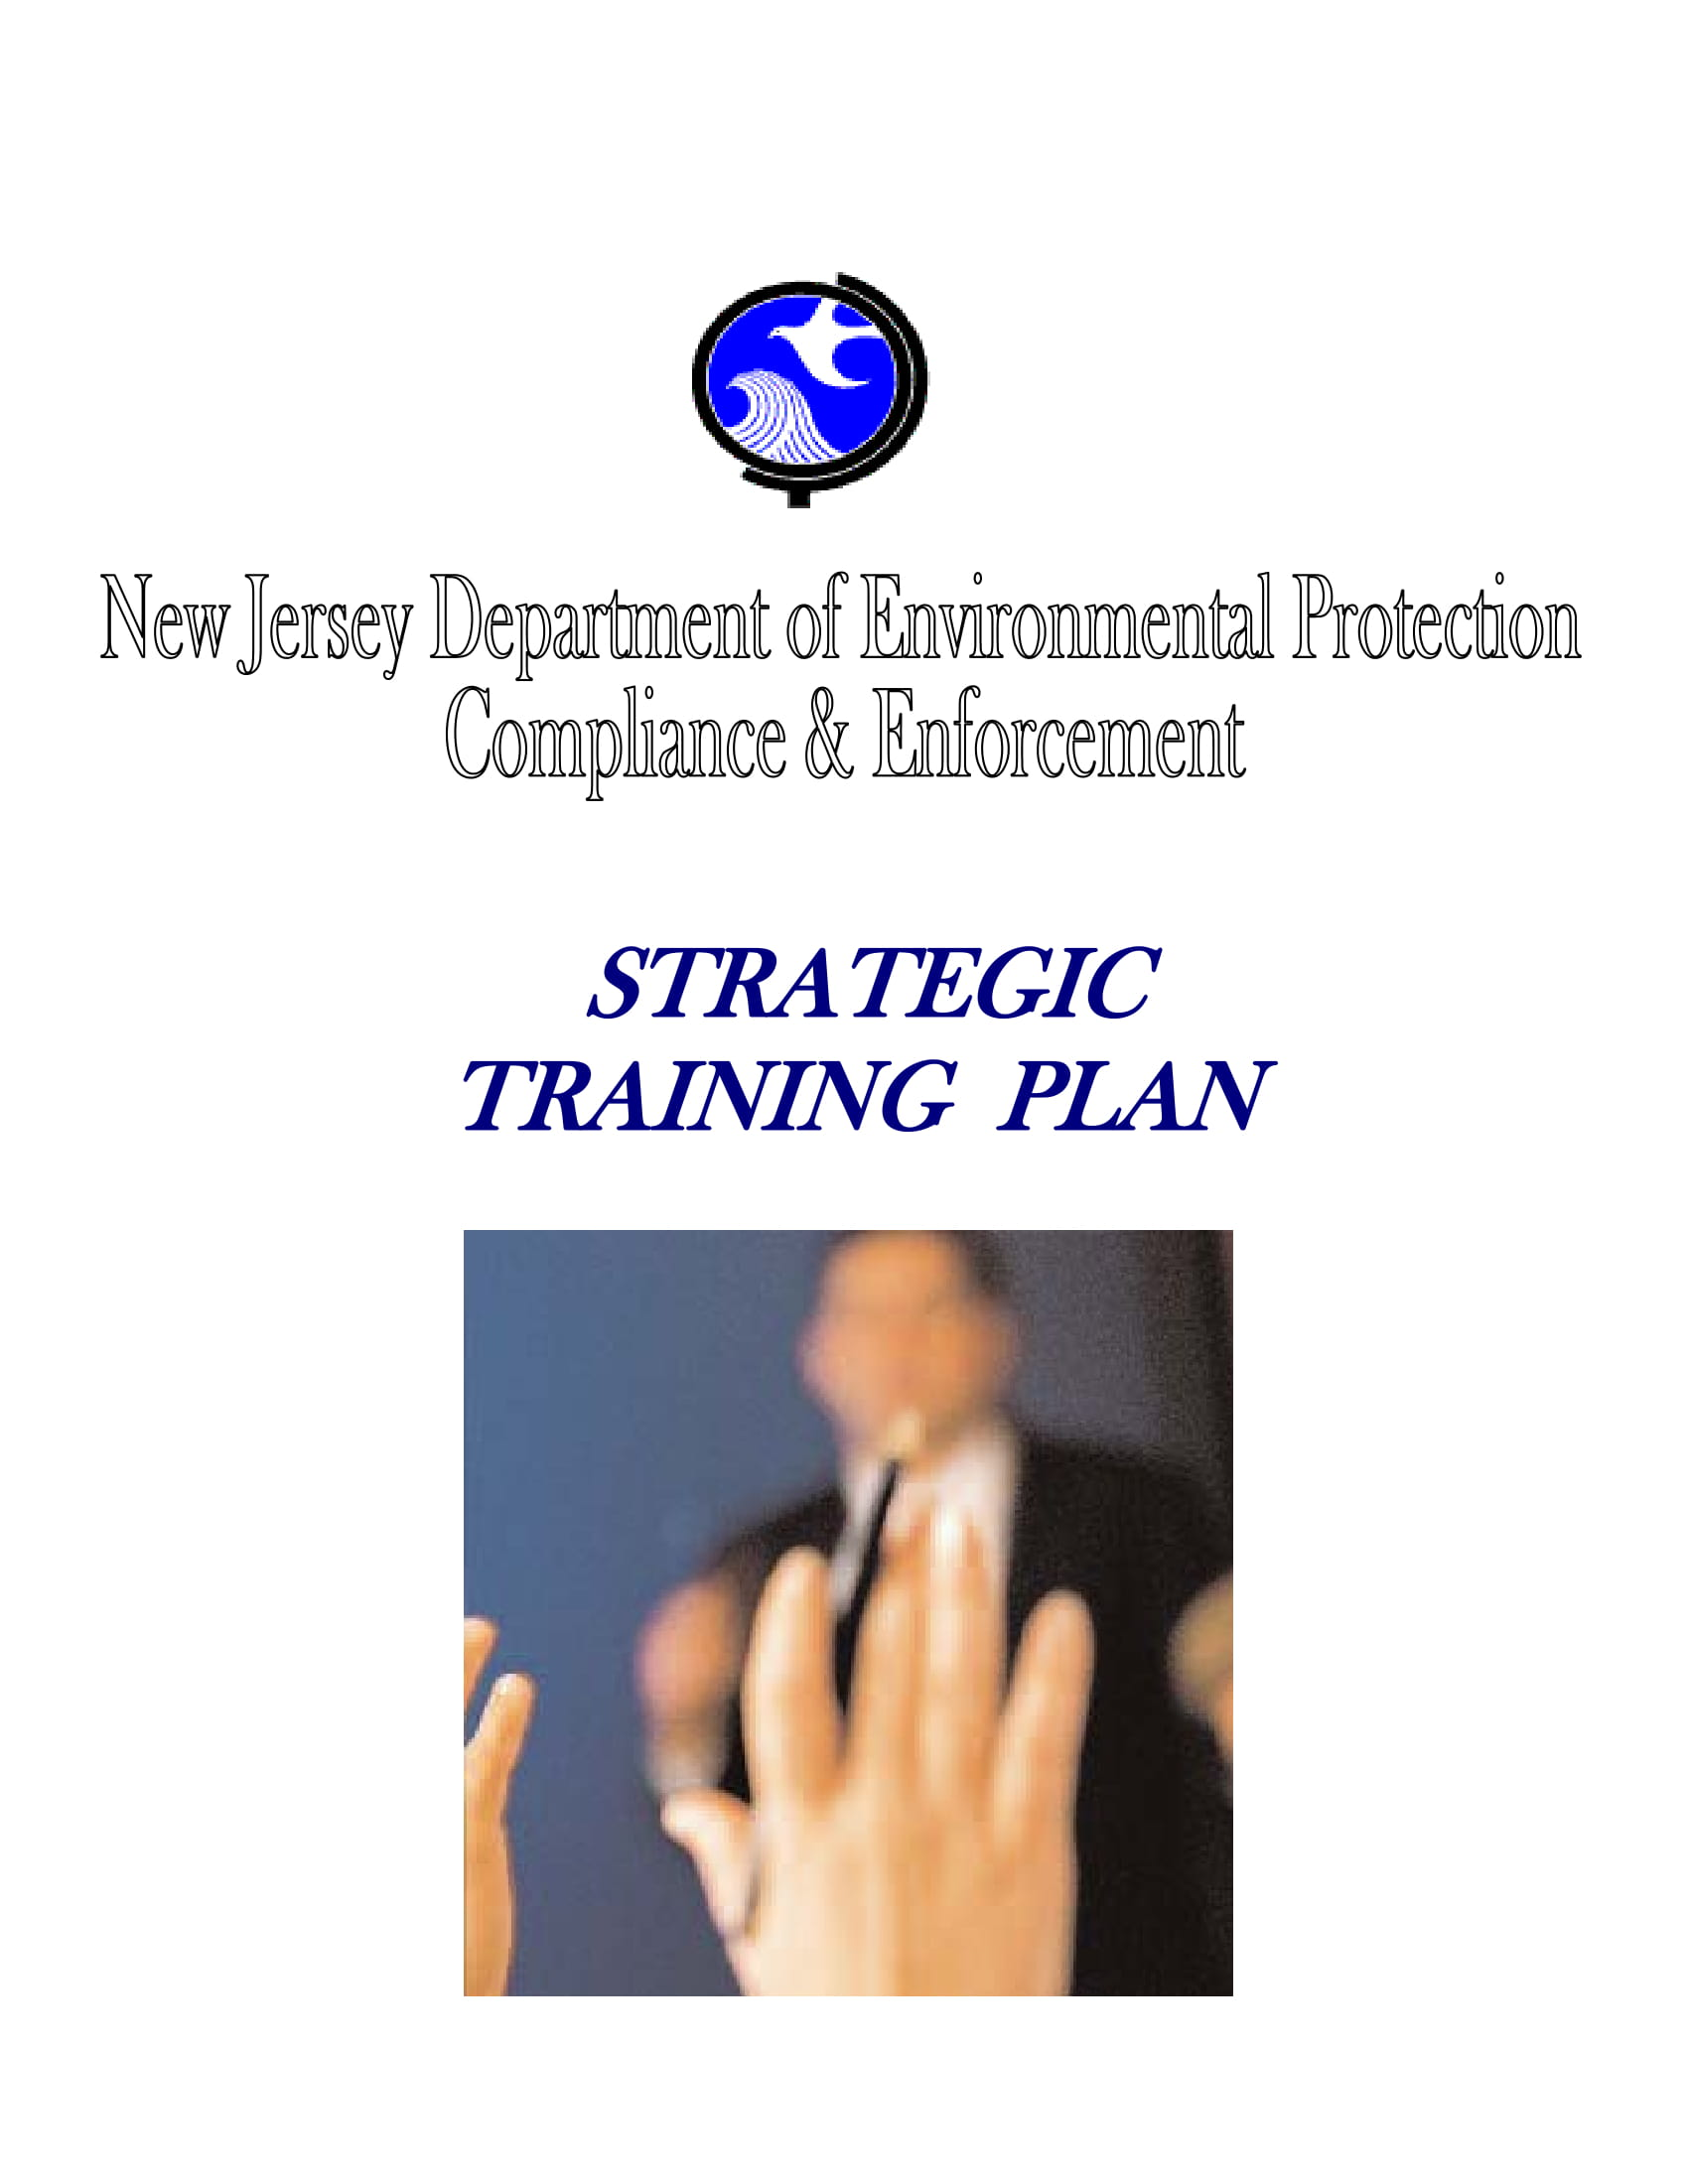 strategic training project plan example 01